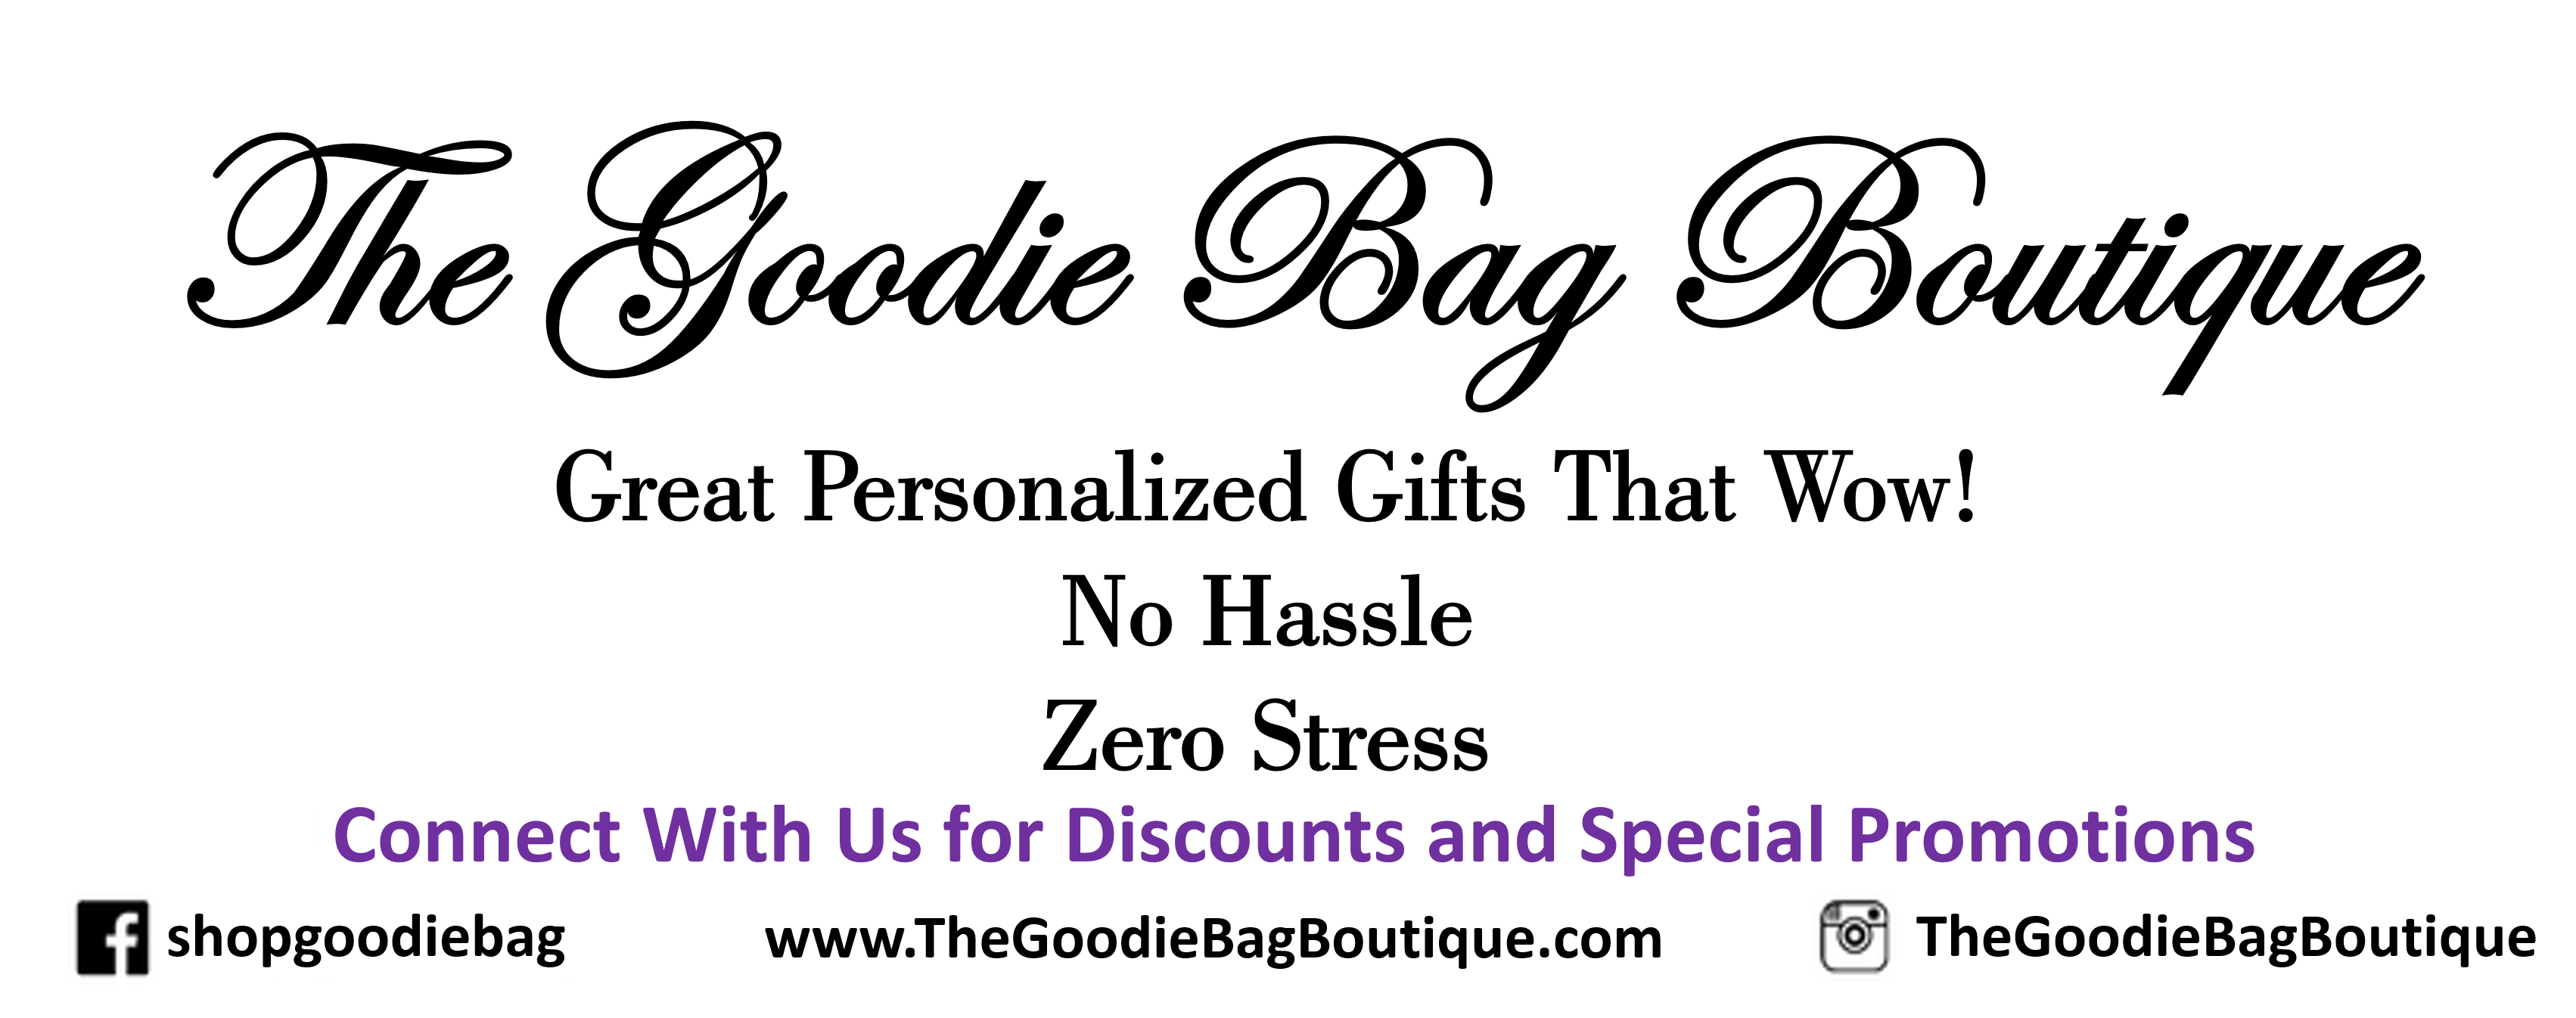 The Goodie Bag Boutique